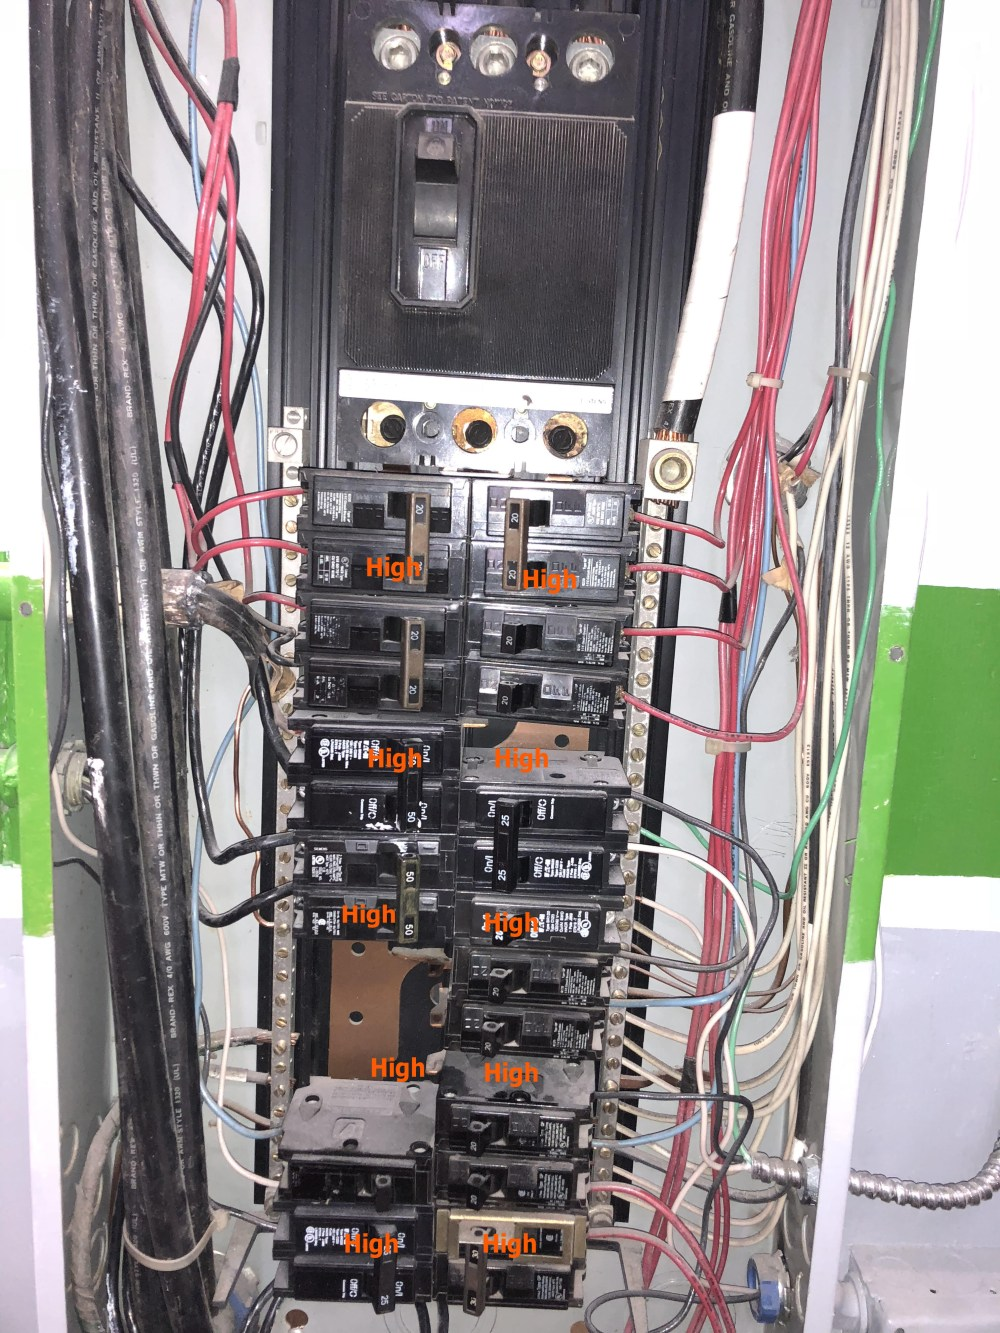 medium resolution of  8 breakers are double pole and deliver 240 volt 8 breakers are single pole only 1 of the 8 single breakers is connected to the high leg